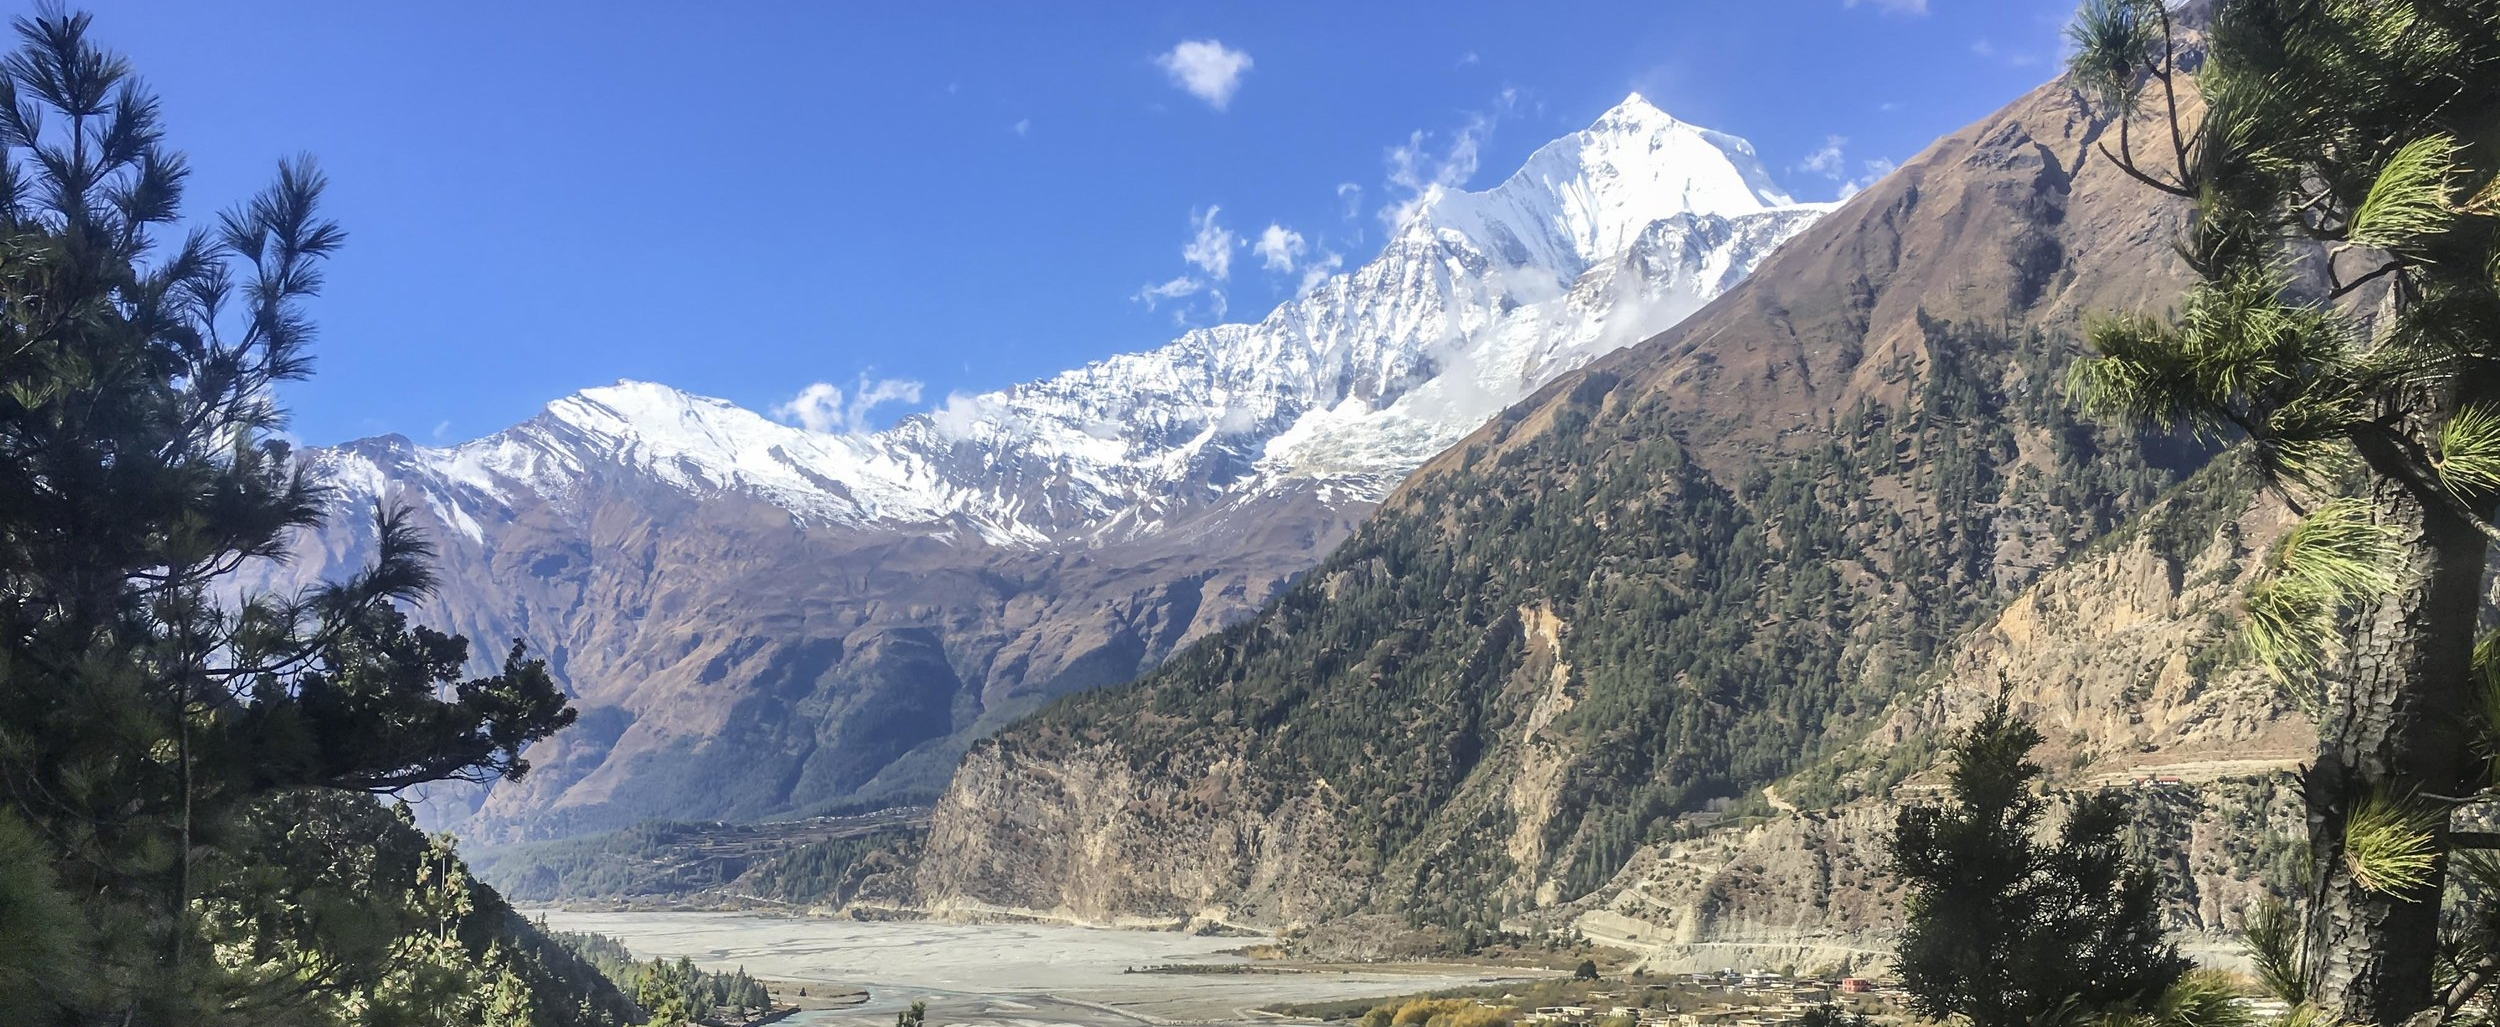 One of the many spectacular views on the Annapurna Circuit... but not Annapurna!  This is Dhaulagiri, one of the three 8000 meter peaks that the circuit passes by.